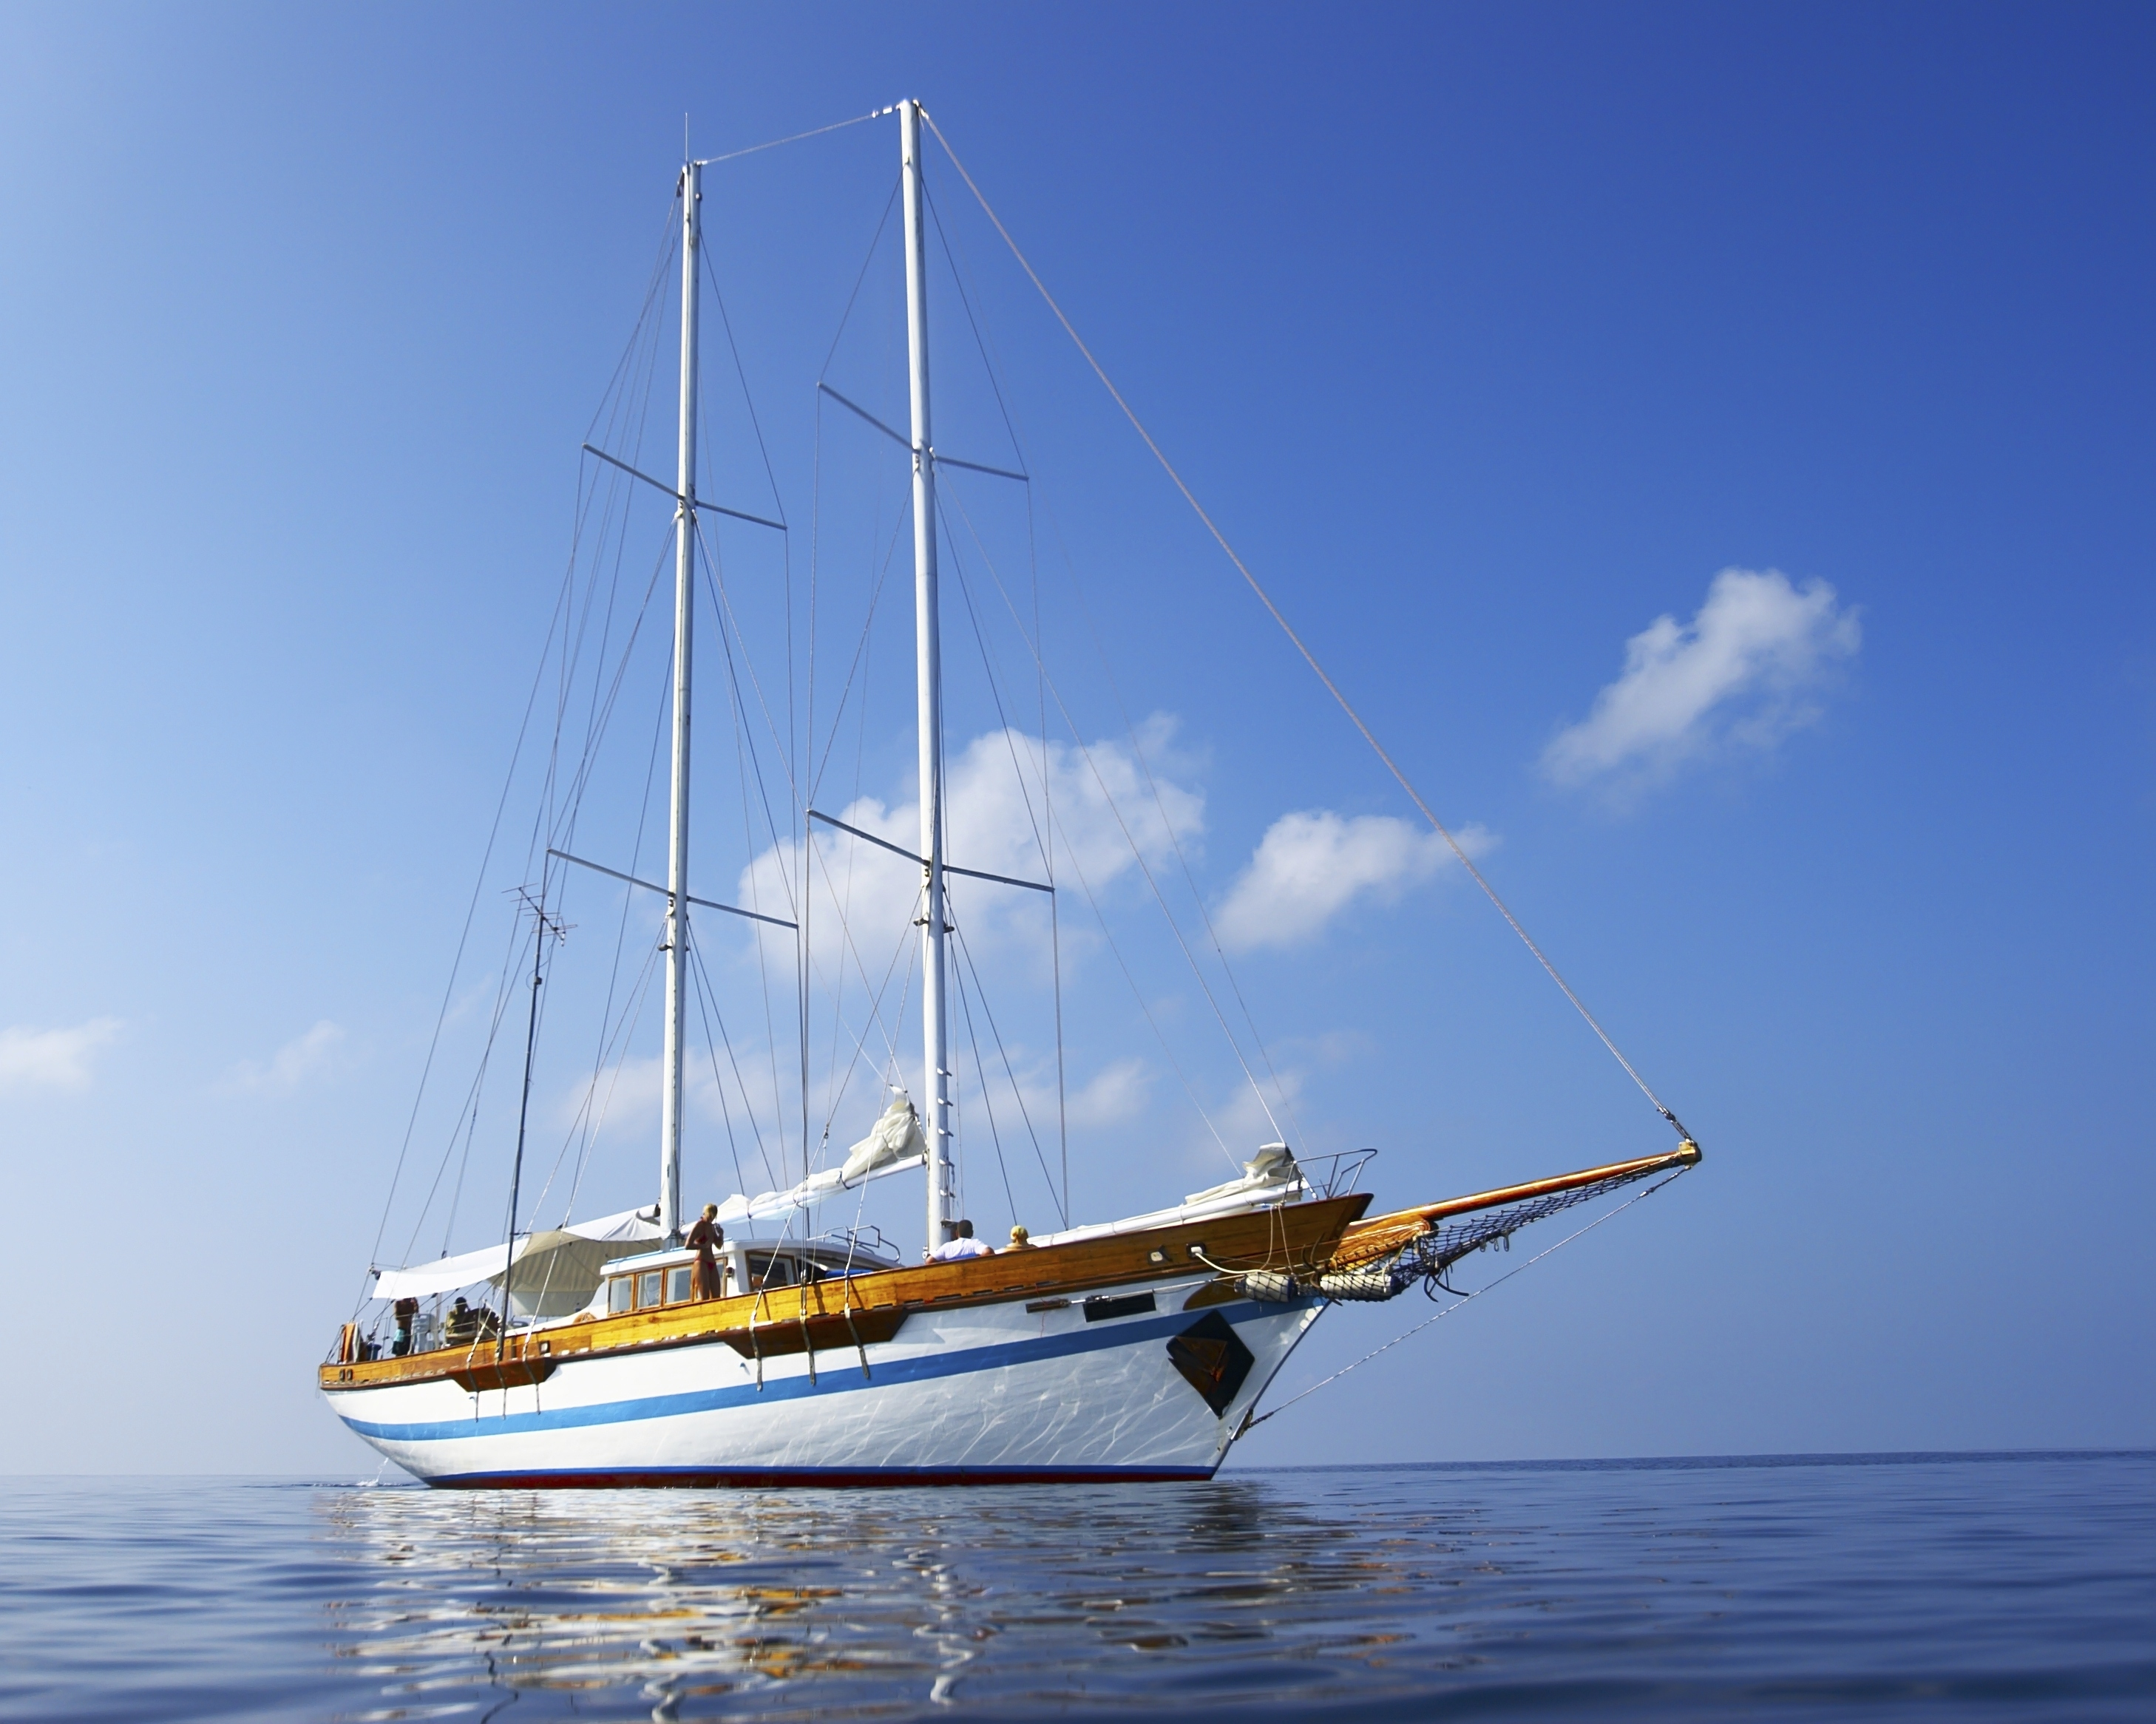 Go sailing in the Bahamas